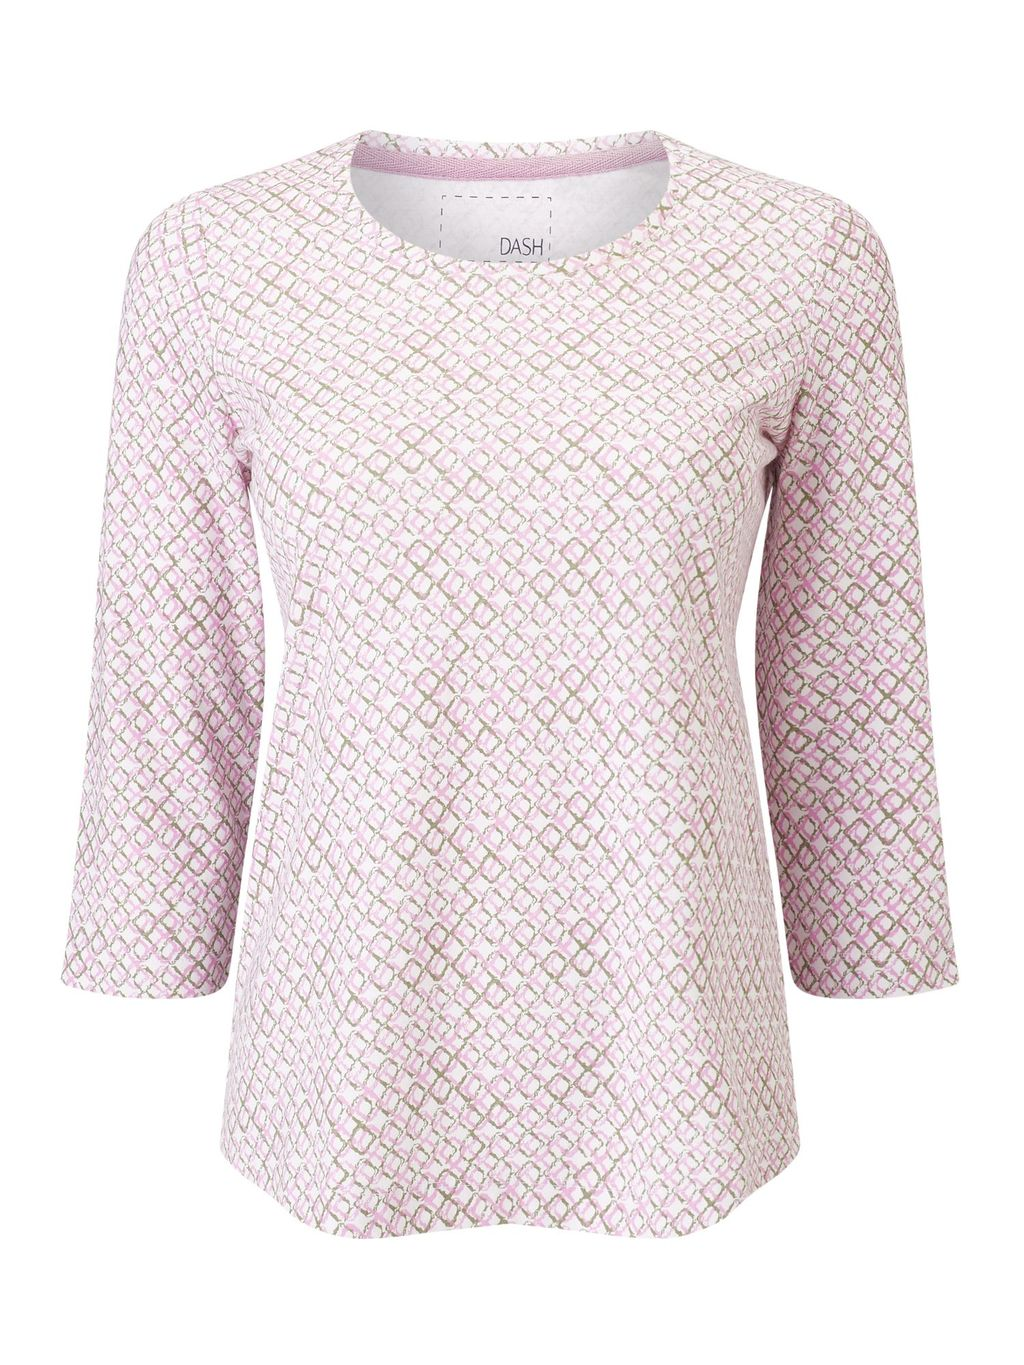 Diamond Print Basic Tee, Pink - style: t-shirt; predominant colour: blush; occasions: casual, creative work; length: standard; fibres: cotton - stretch; fit: body skimming; neckline: crew; sleeve length: 3/4 length; sleeve style: standard; pattern type: fabric; pattern size: standard; pattern: patterned/print; texture group: jersey - stretchy/drapey; season: s/s 2016; wardrobe: highlight